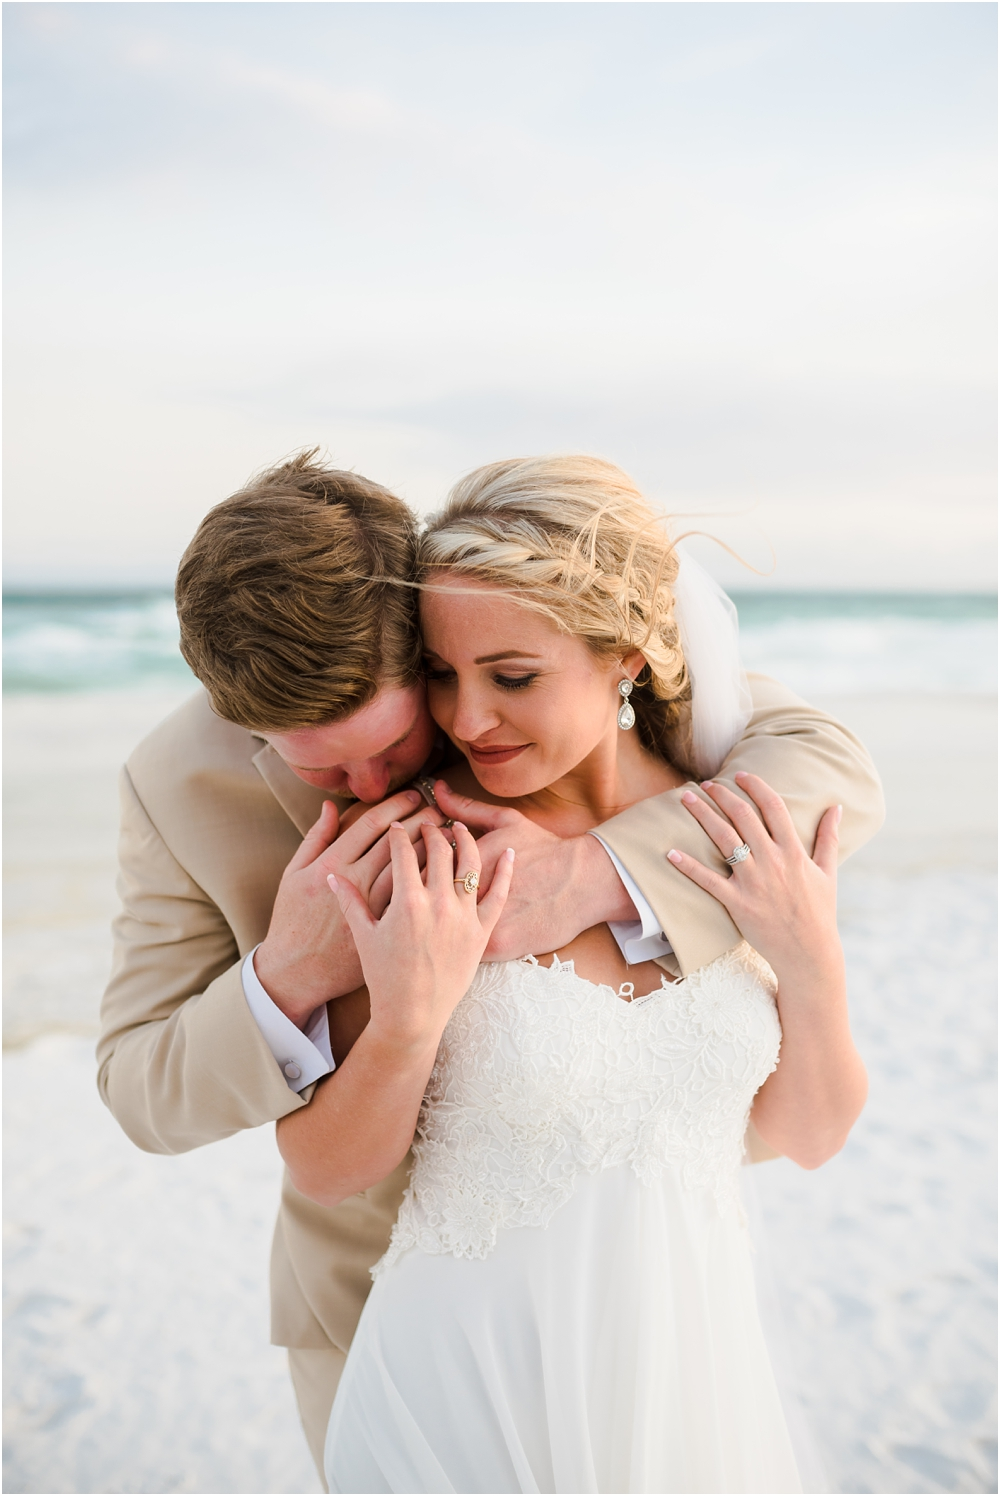 dillard-florida-wedding-photographer-panama-city-beach-dothan-tallahassee-kiersten-grant-photography-160.jpg